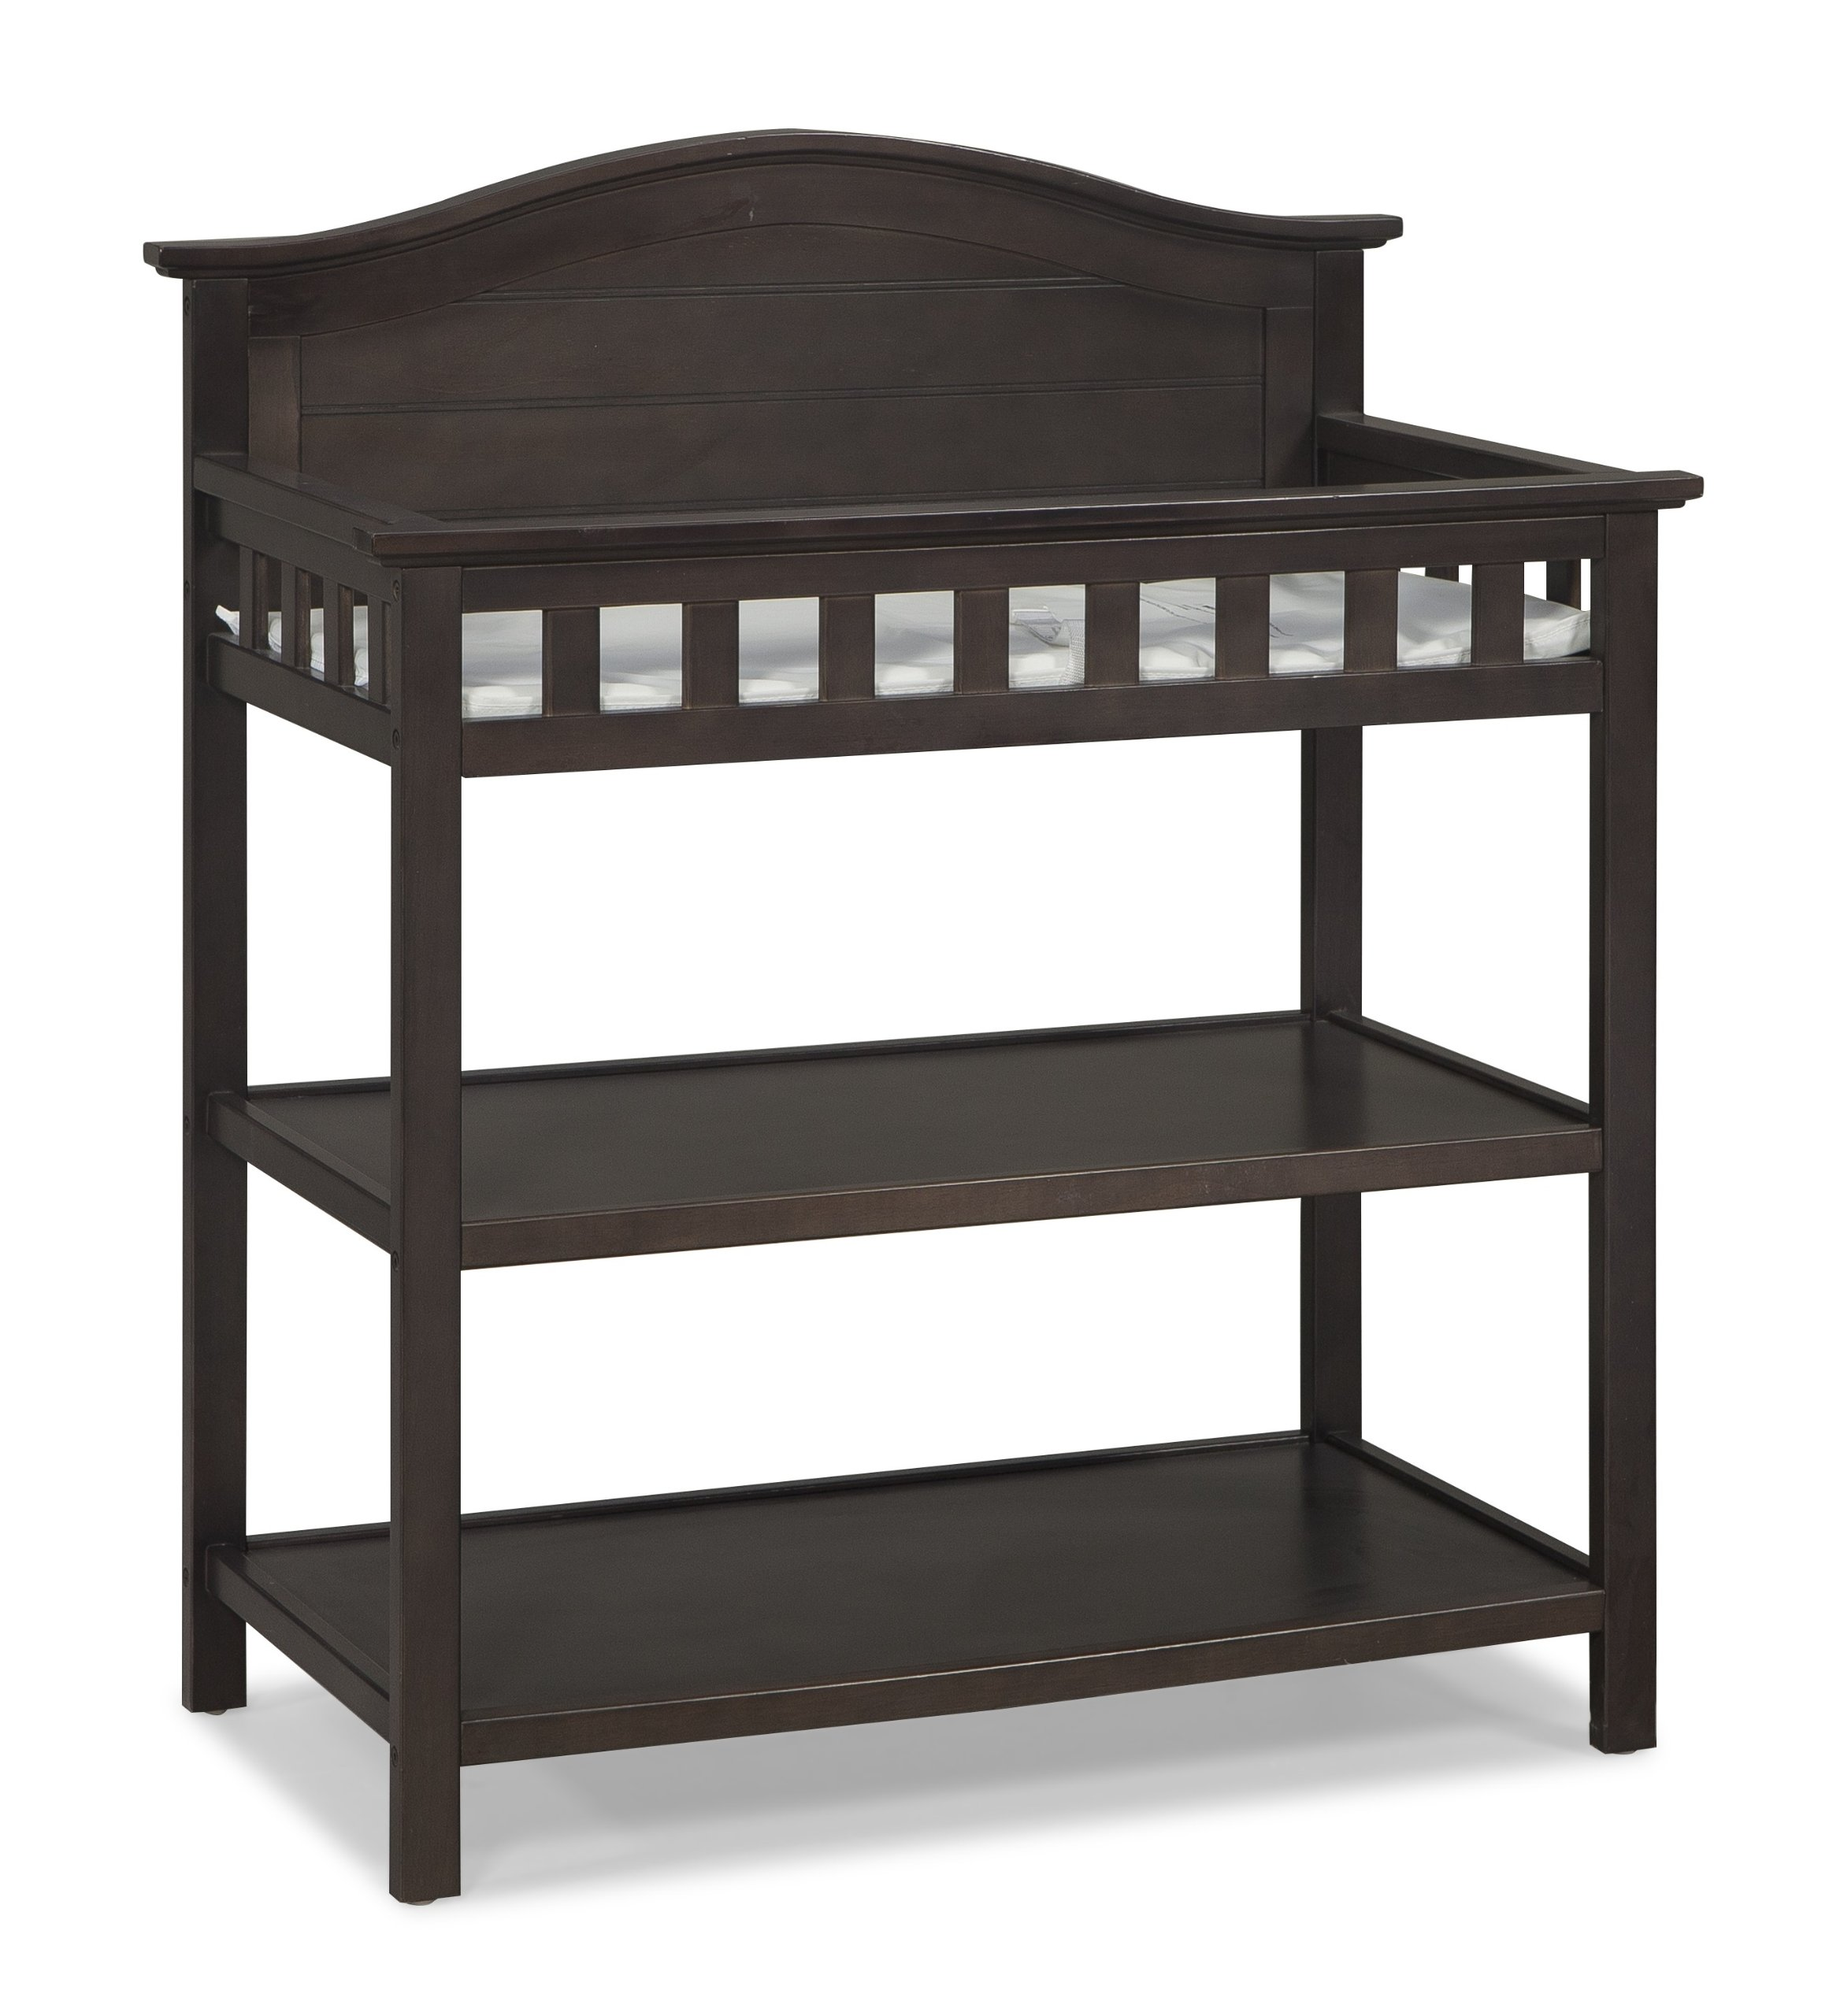 Thomasville Kids Southern Dunes Dressing Table with Pad, Espresso